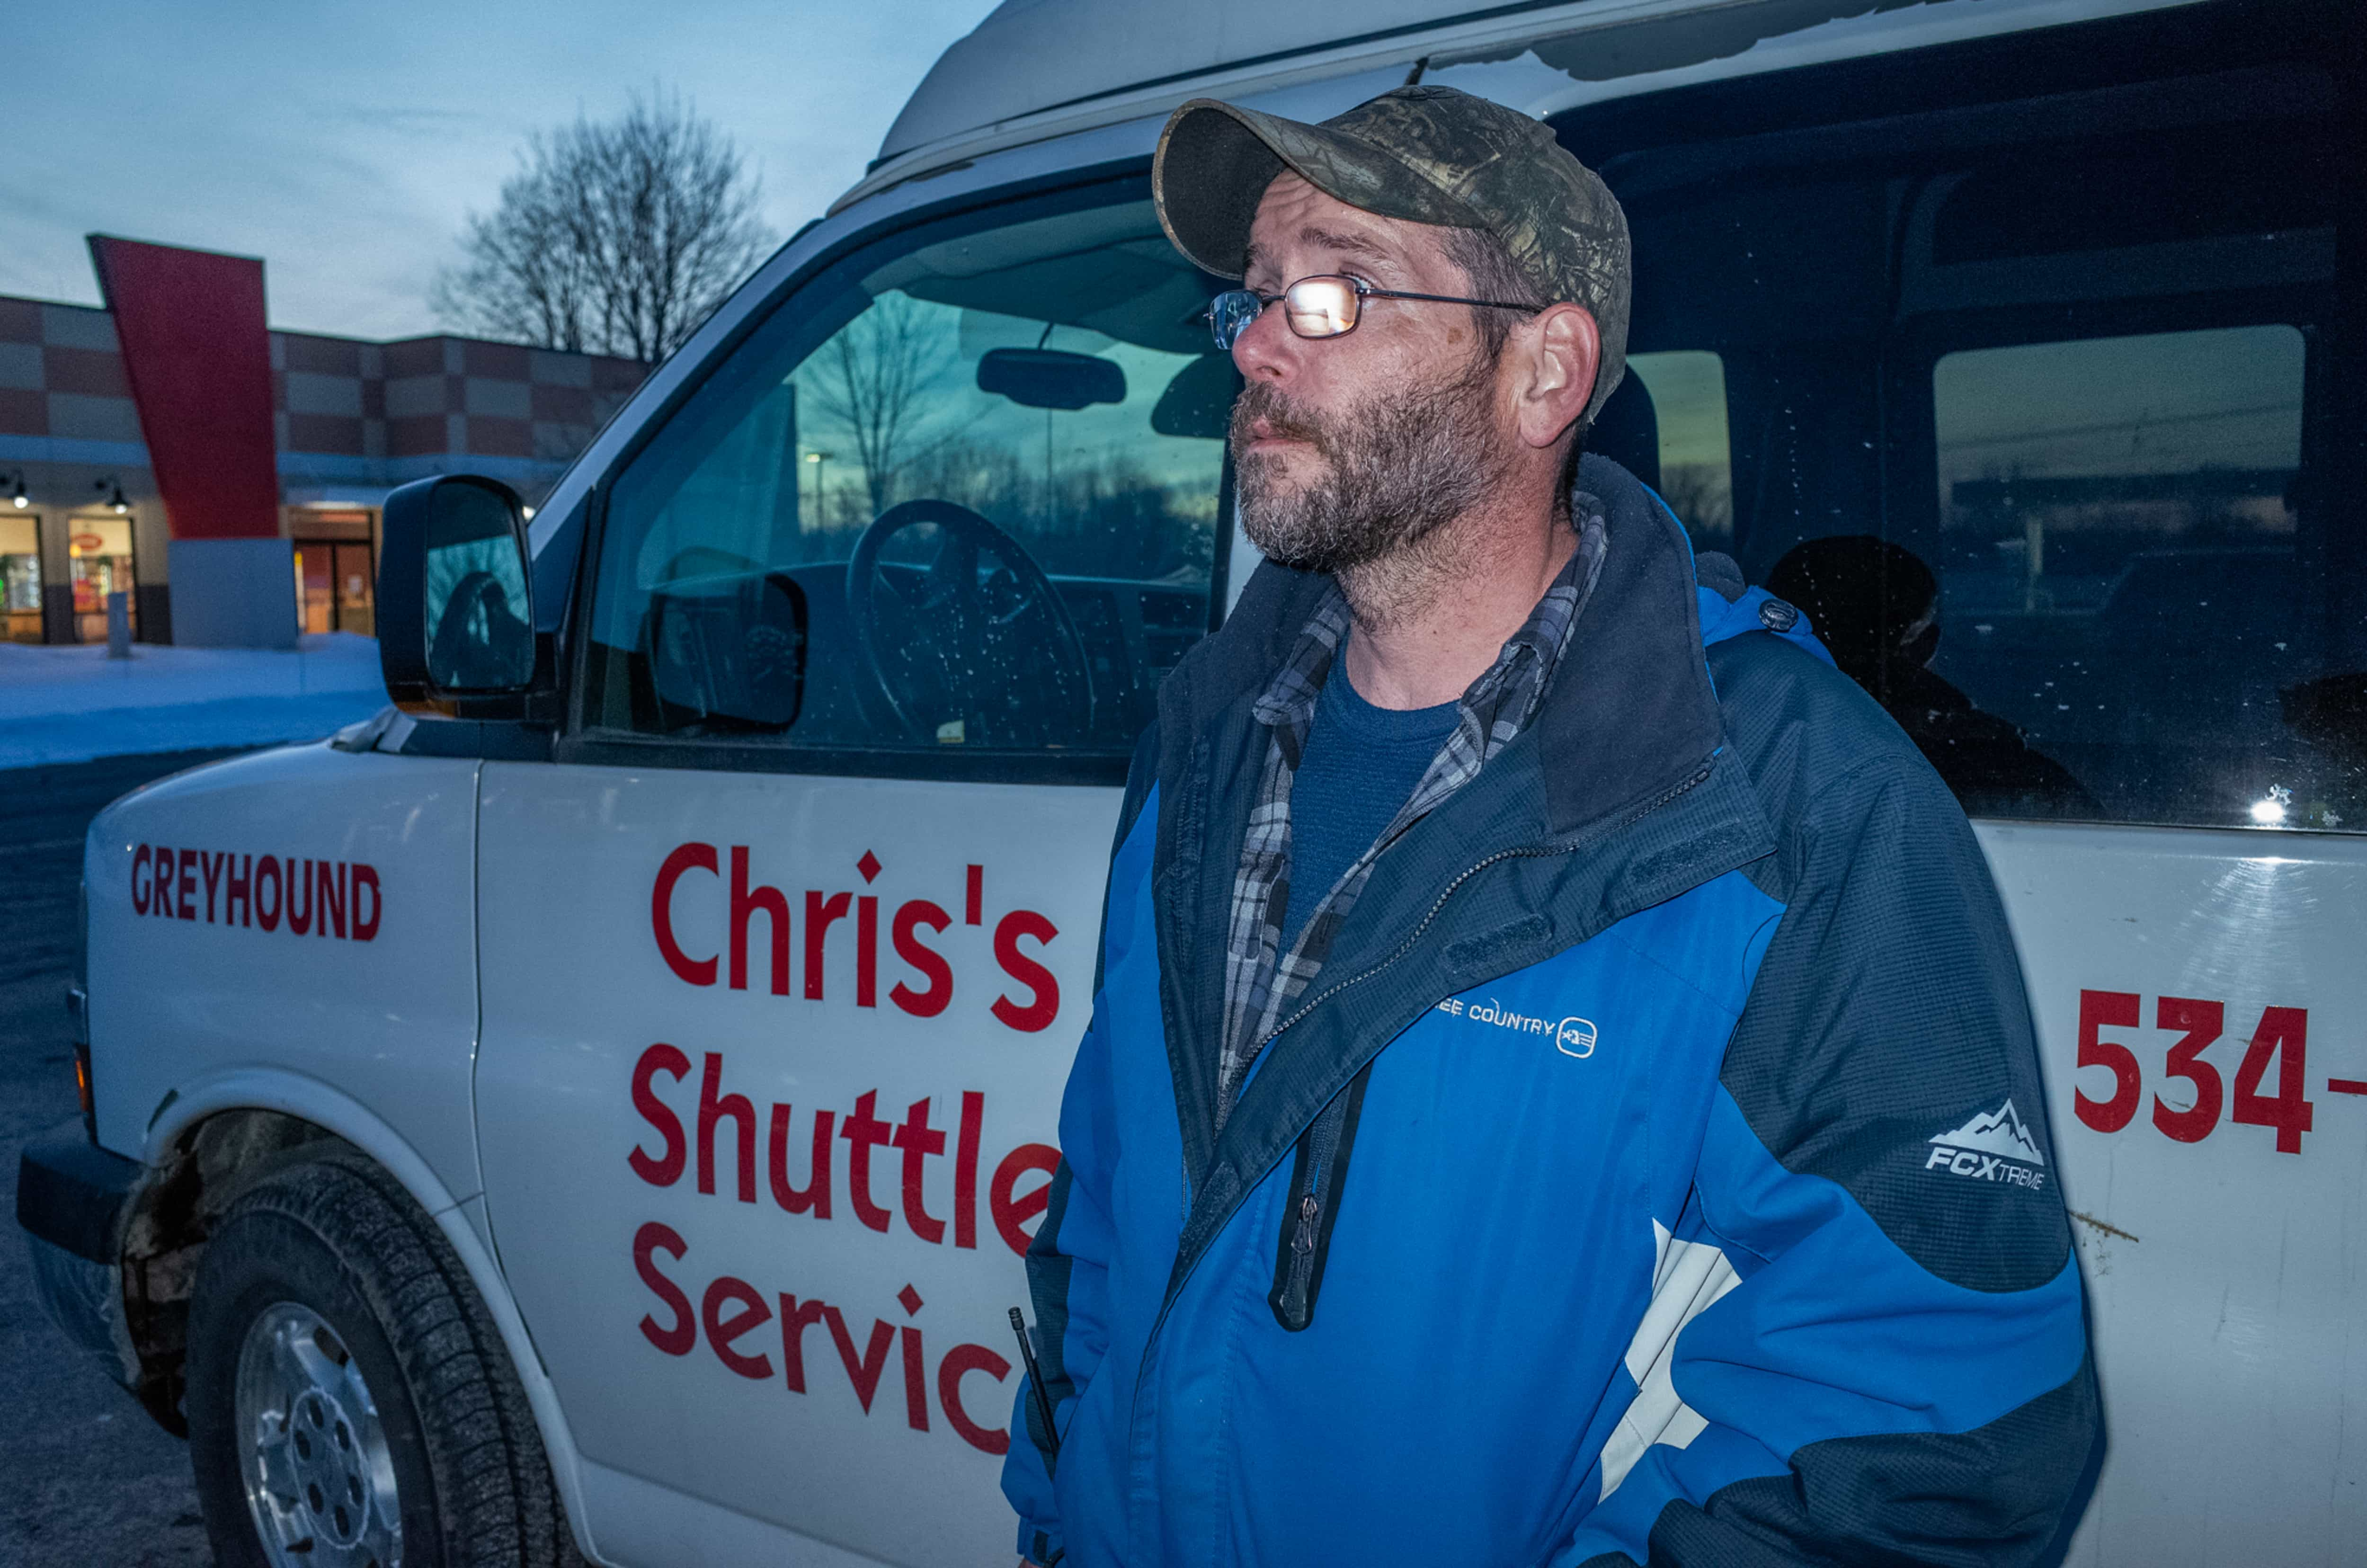 George Ero waits for a Greyhound bus to arrive in Plattsburgh, NY on March 1. Ero works for a taxi company and greets any asylum seekers as they hop off the bus, ferrying them the rest of the way to Roxham Road.